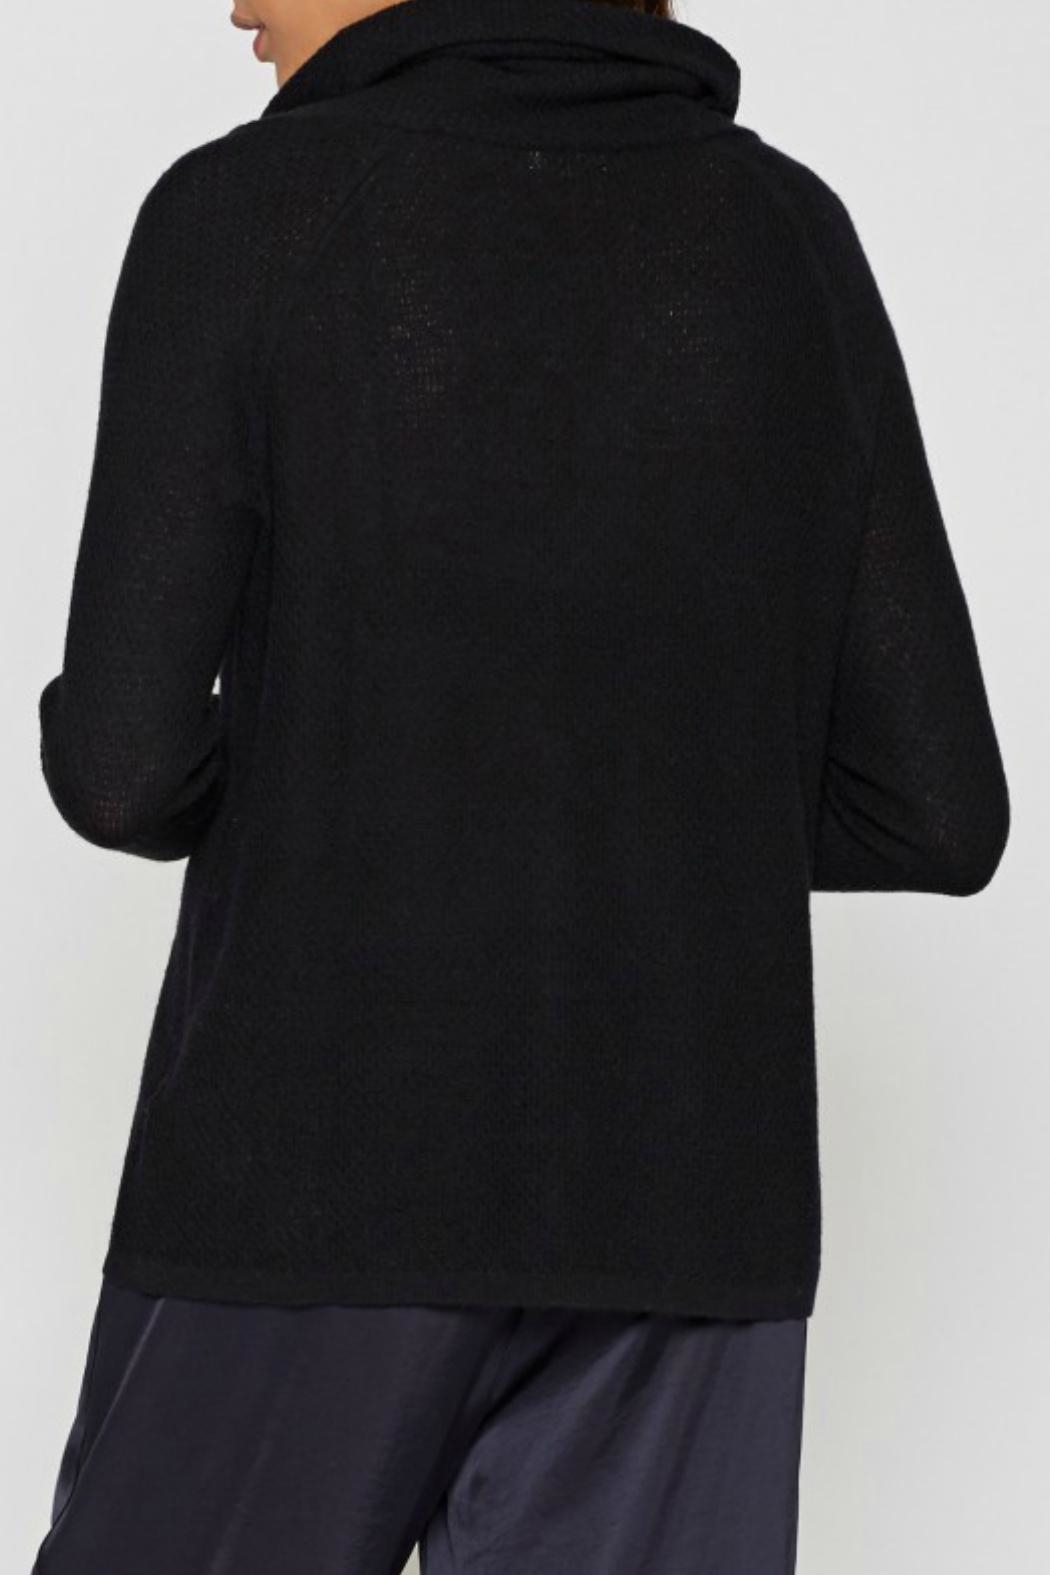 Joie Mattingly Cowl Sweater - Front Full Image